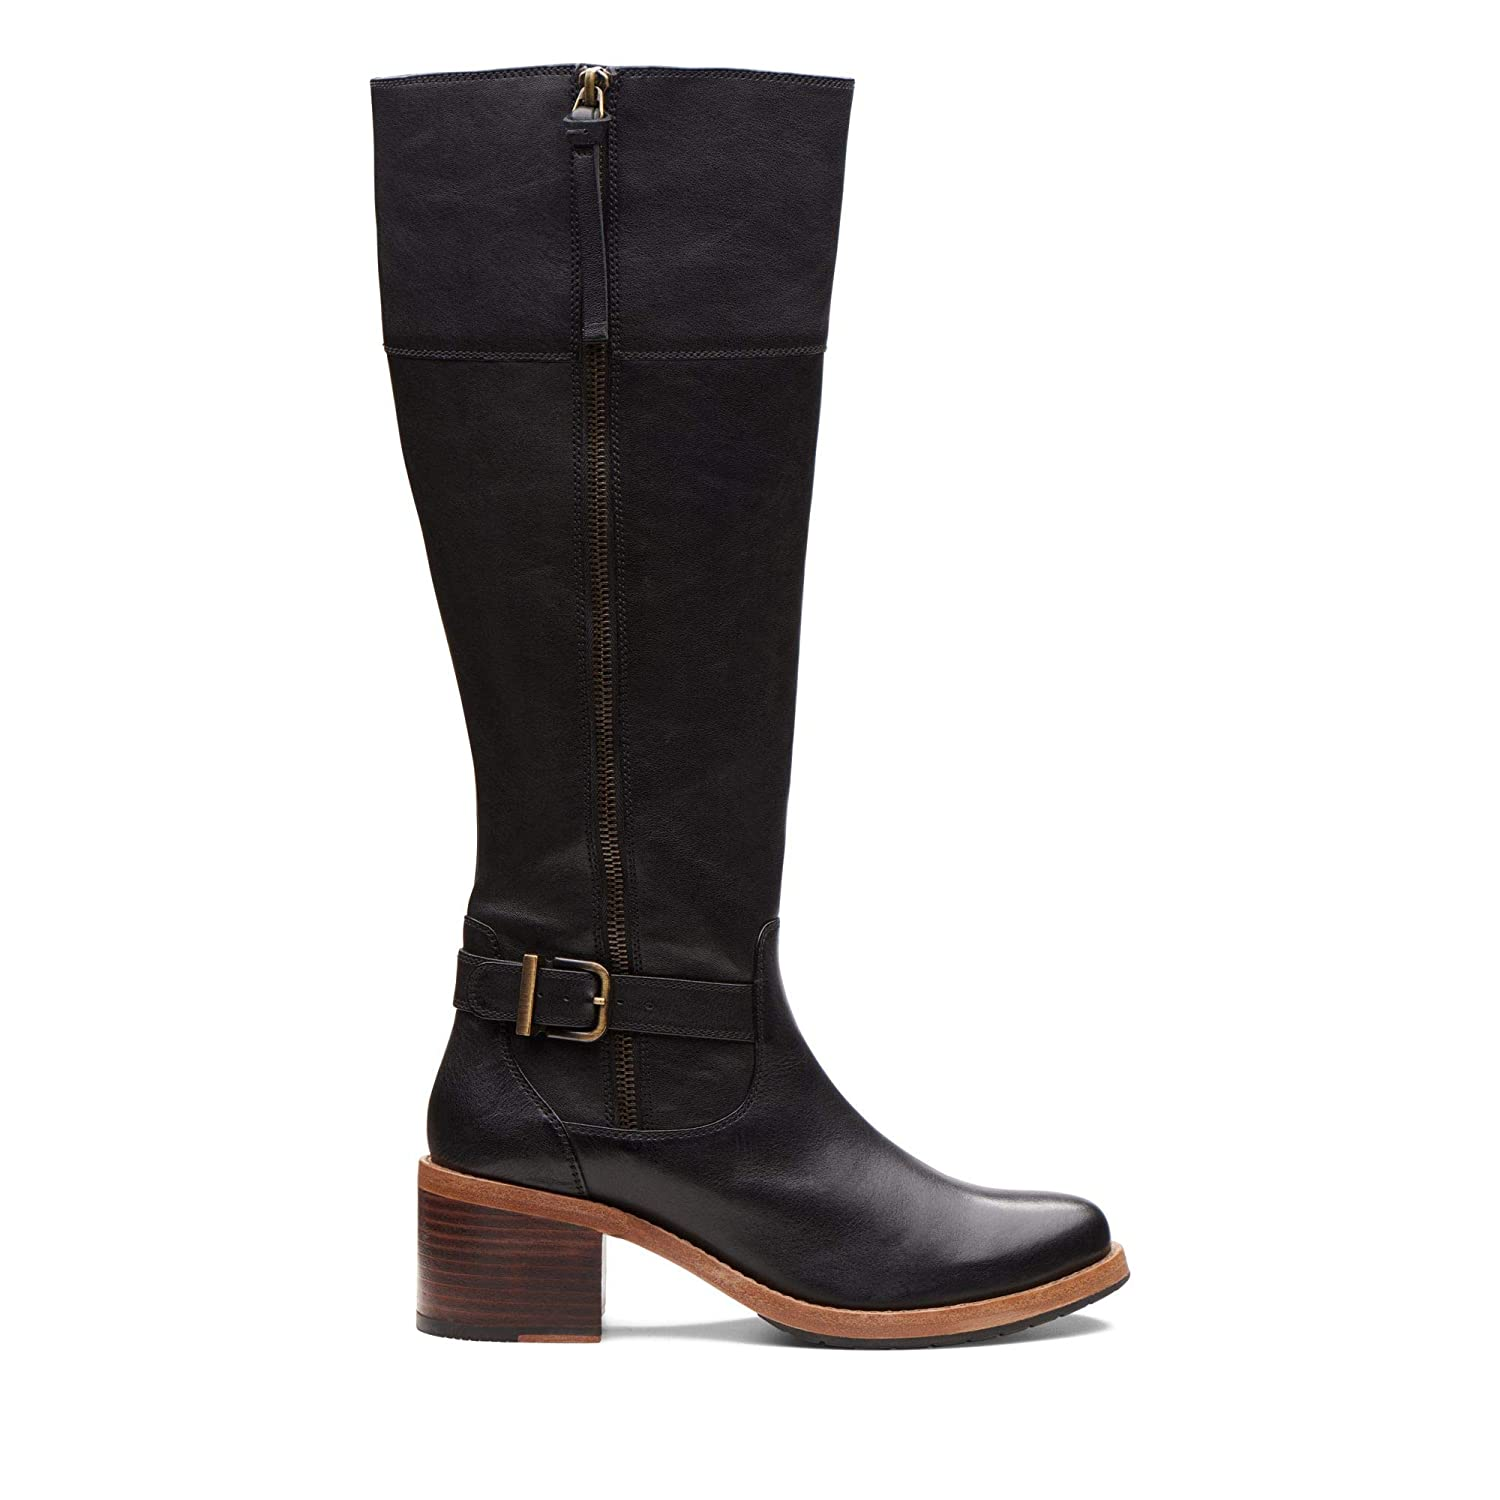 395ead831ed Clarks Clarkdale Sona Leather Boots in Black  Amazon.co.uk  Shoes   Bags